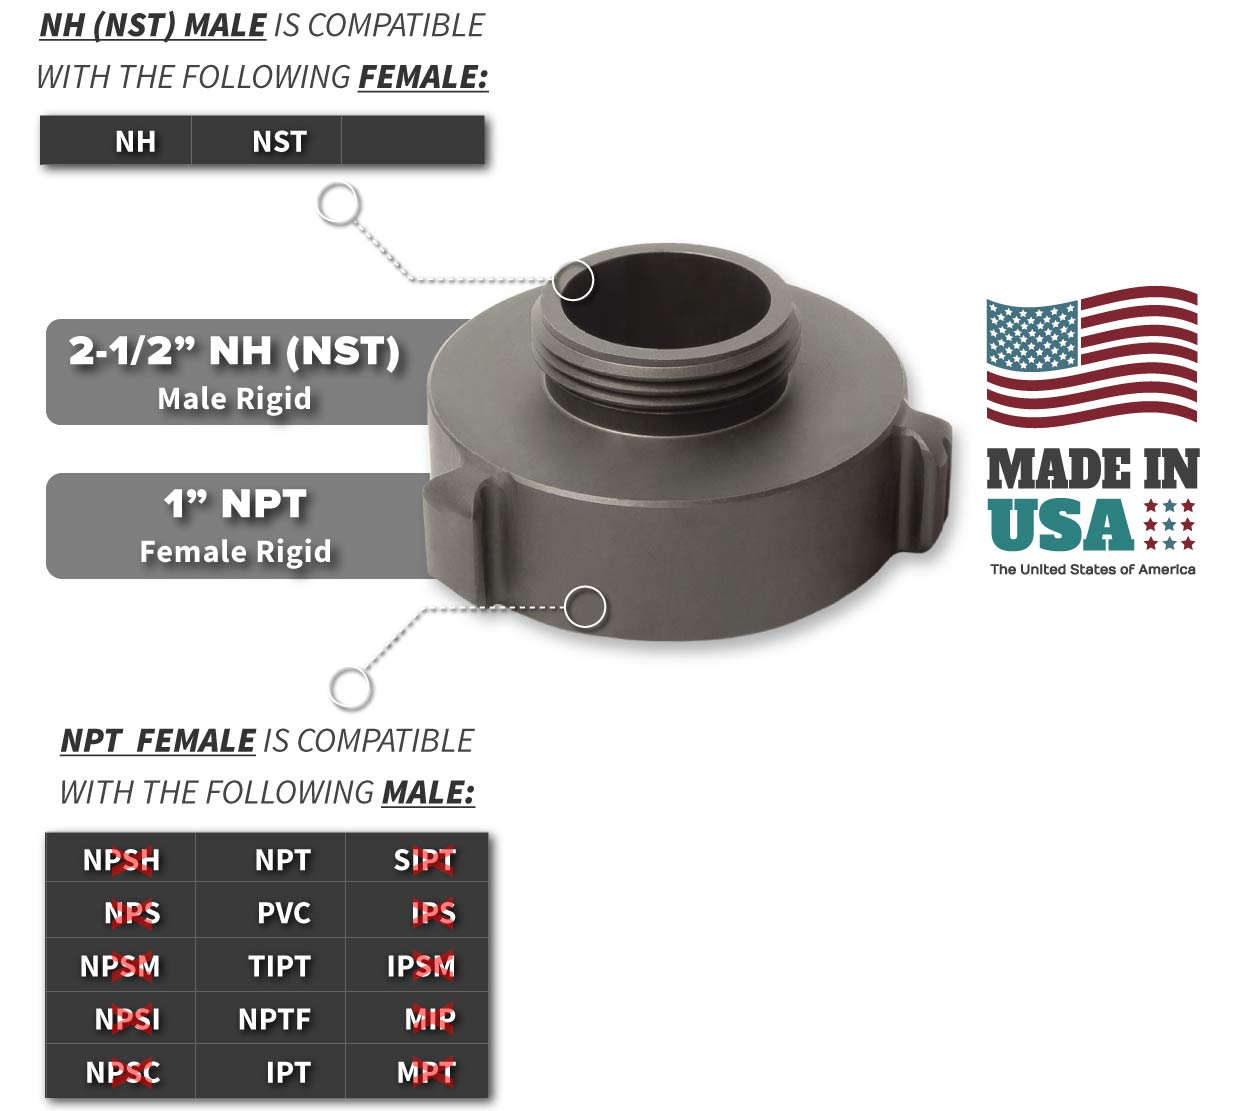 1 Inch NPT Female x 2.5 Inch NH-NST Male Compatibility Thread Chart